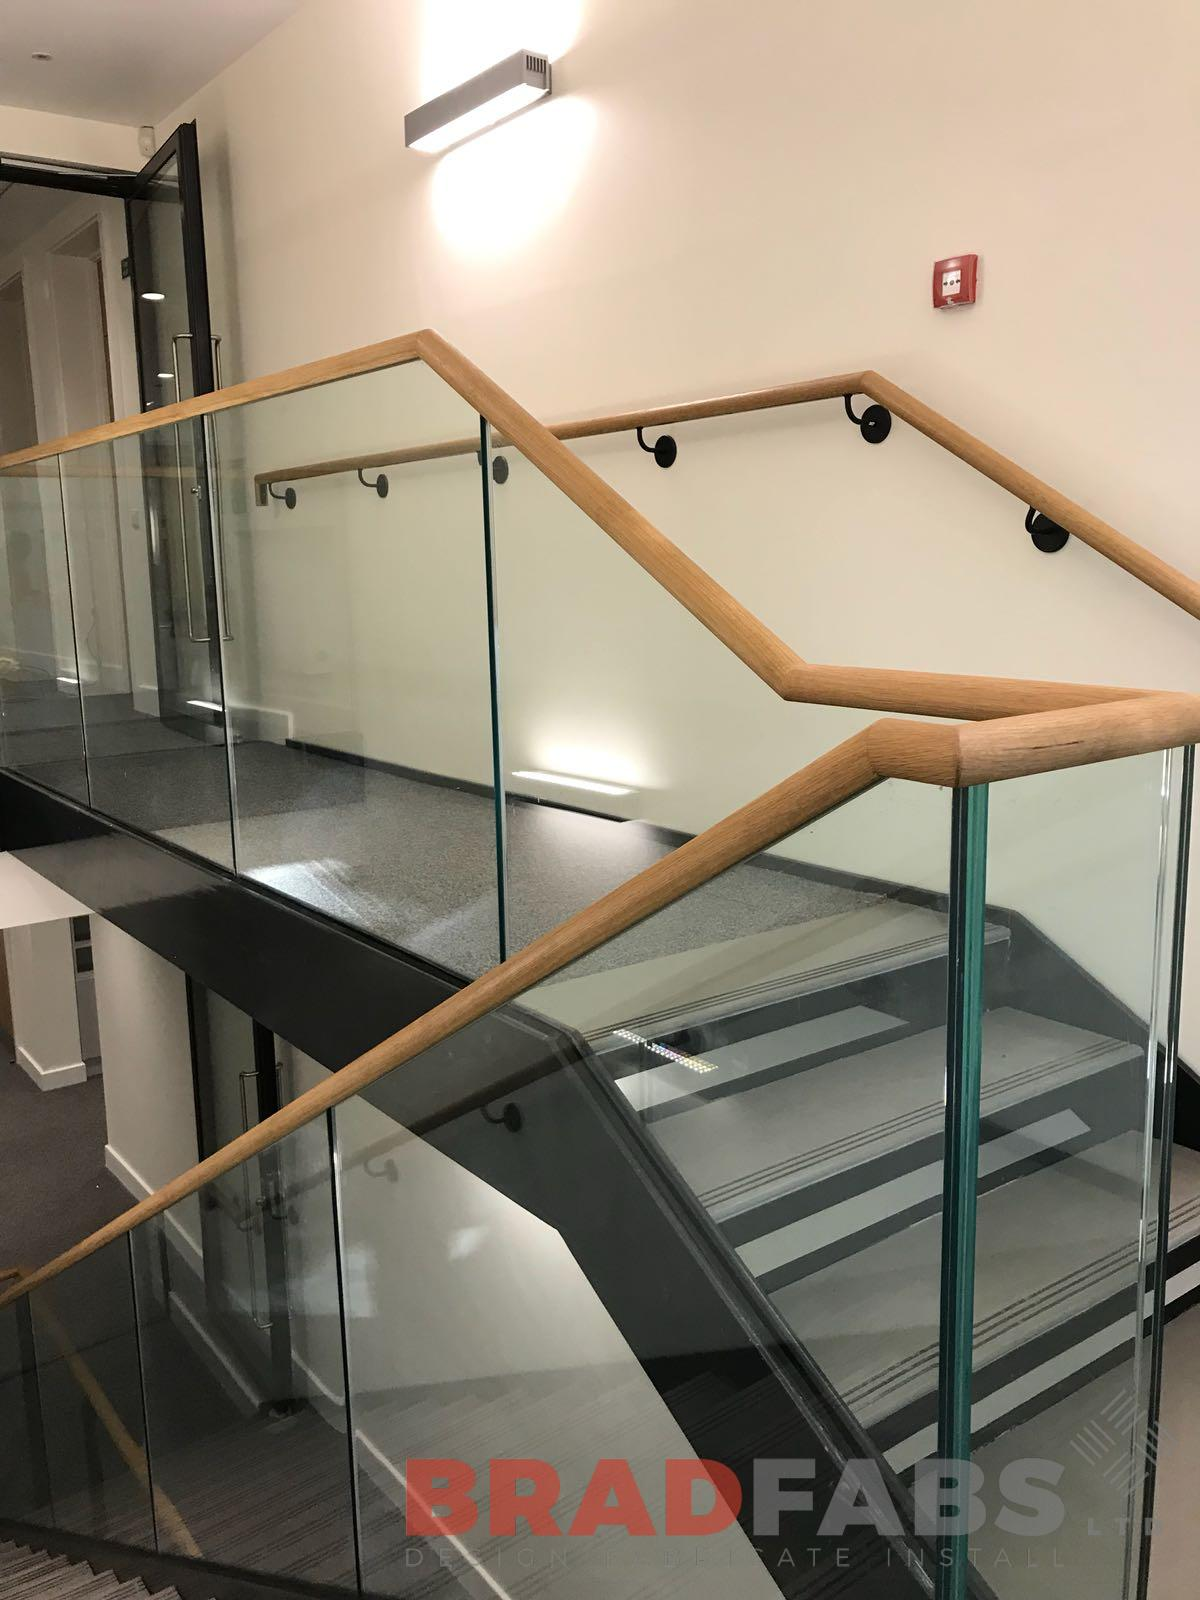 School staircase with glass balustrade and wooden handrail installed by UK based comany Bradfabs